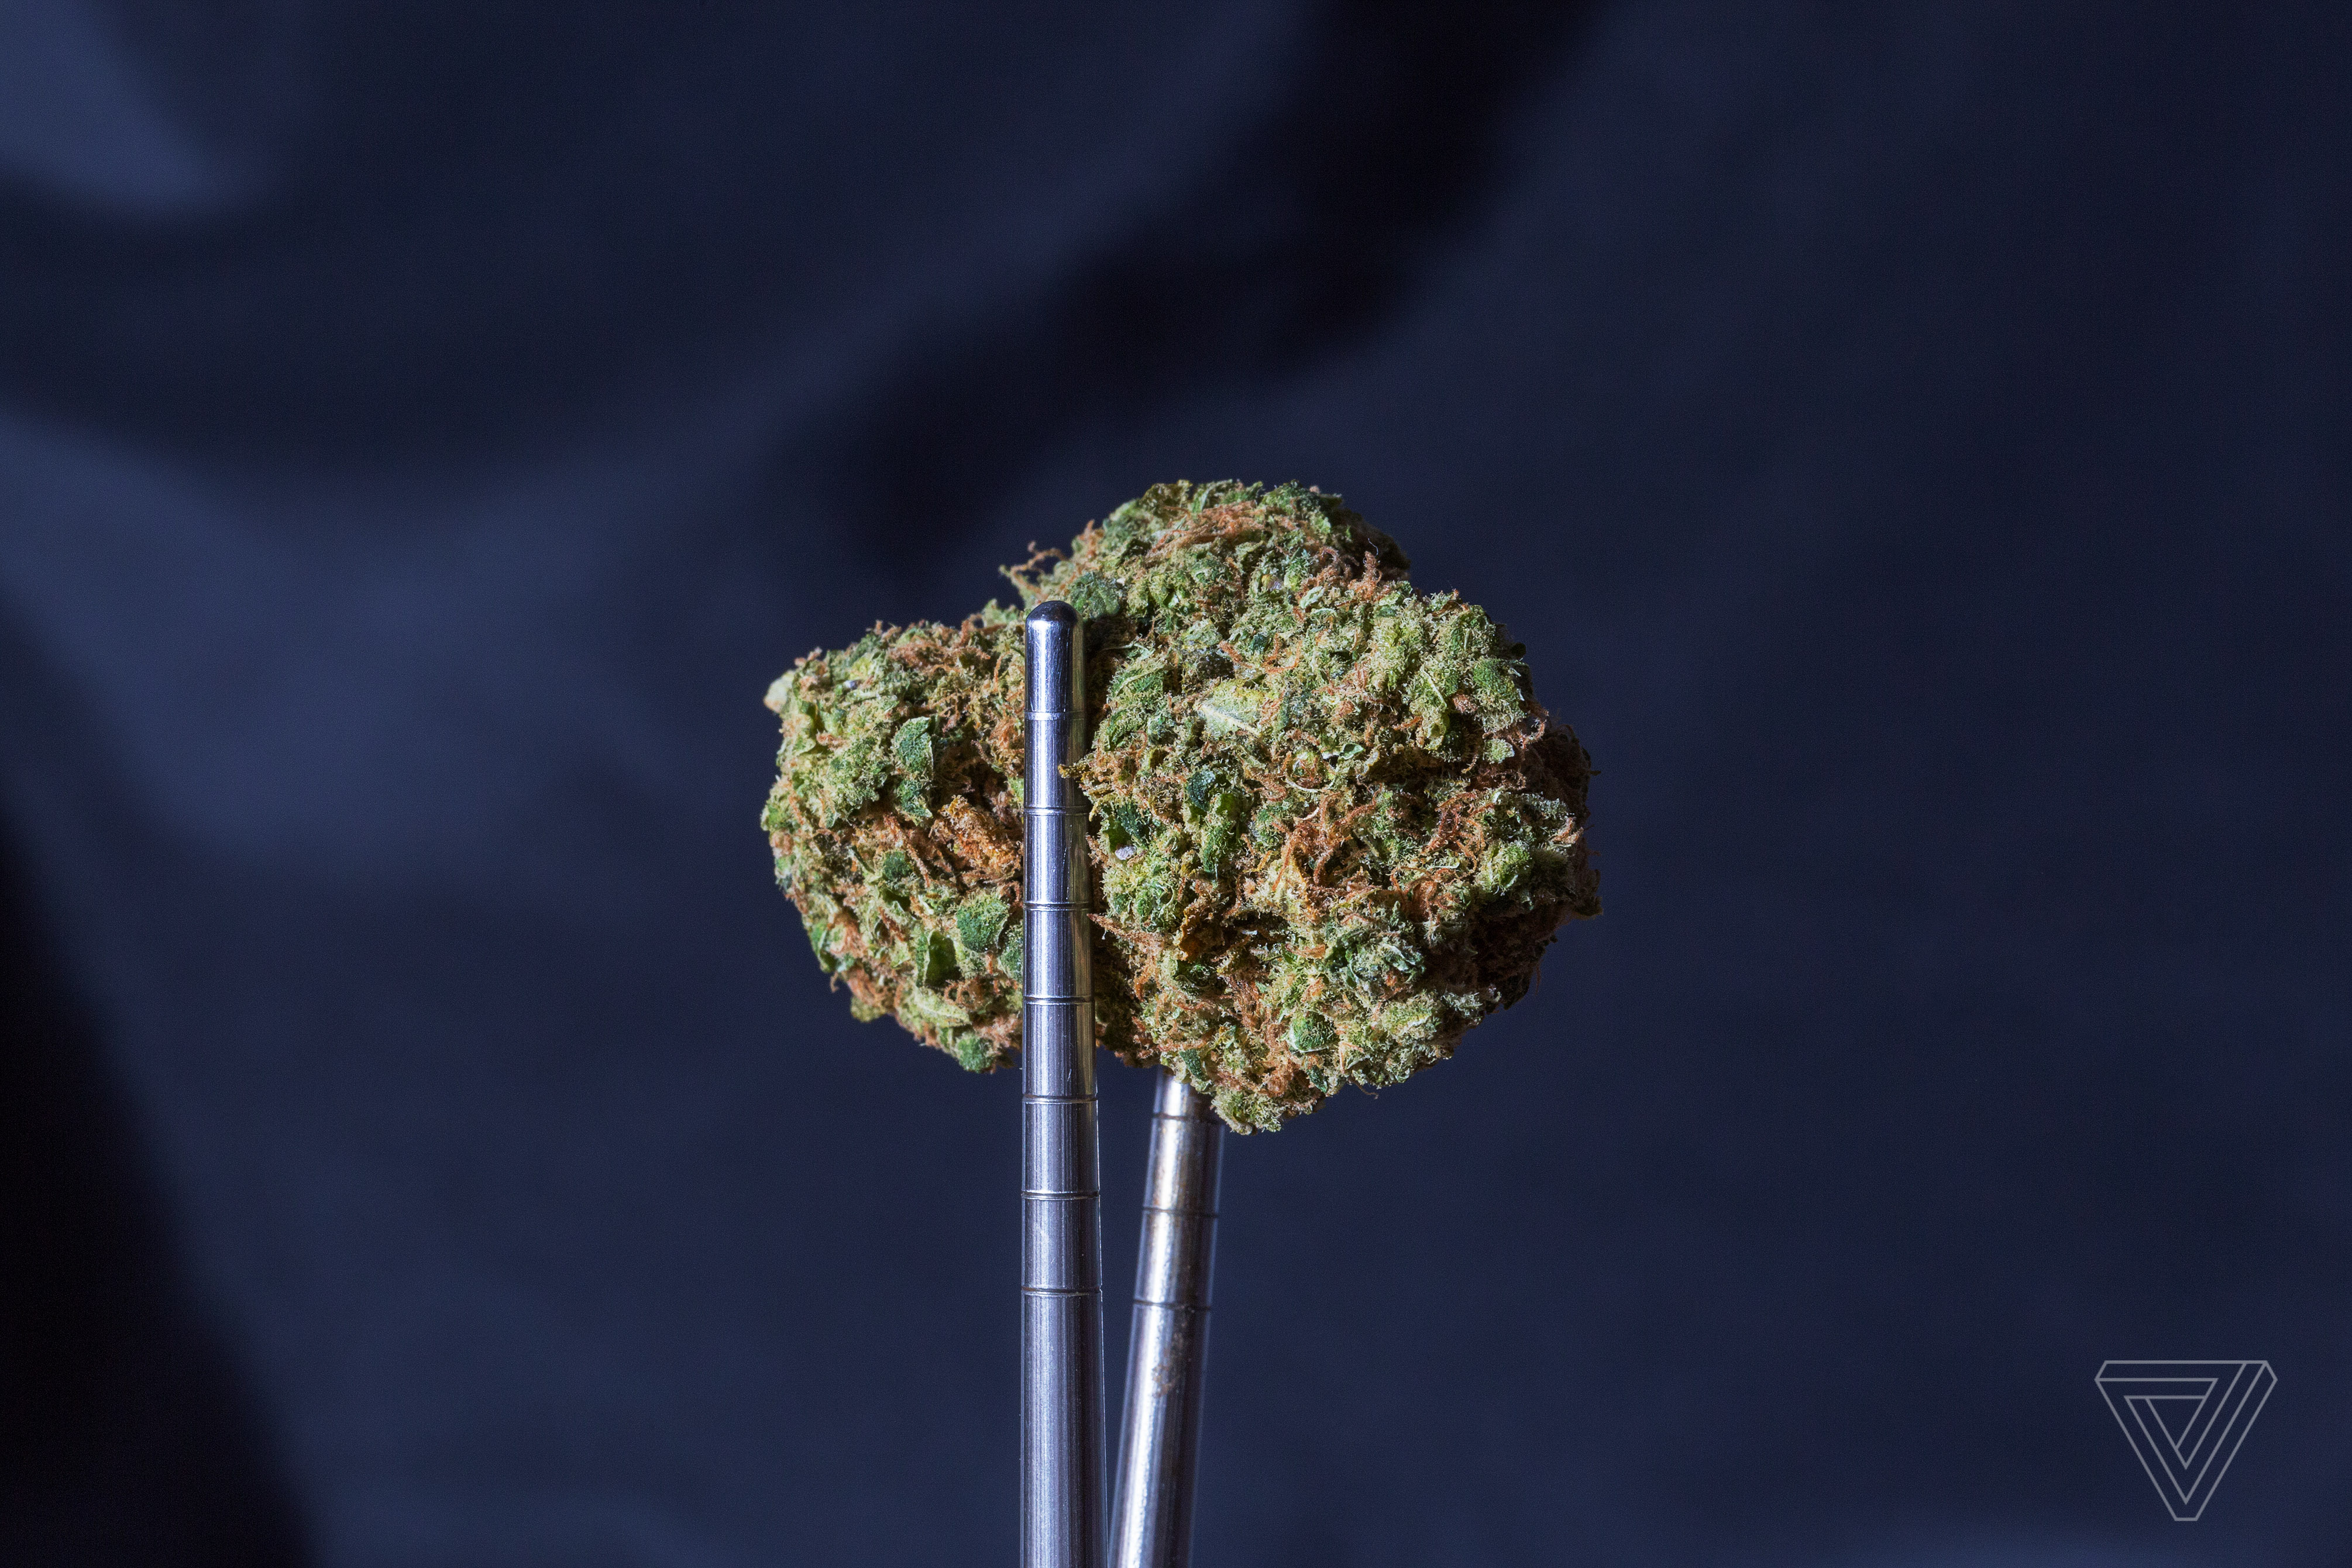 A chunk of weed held up by tweezers.